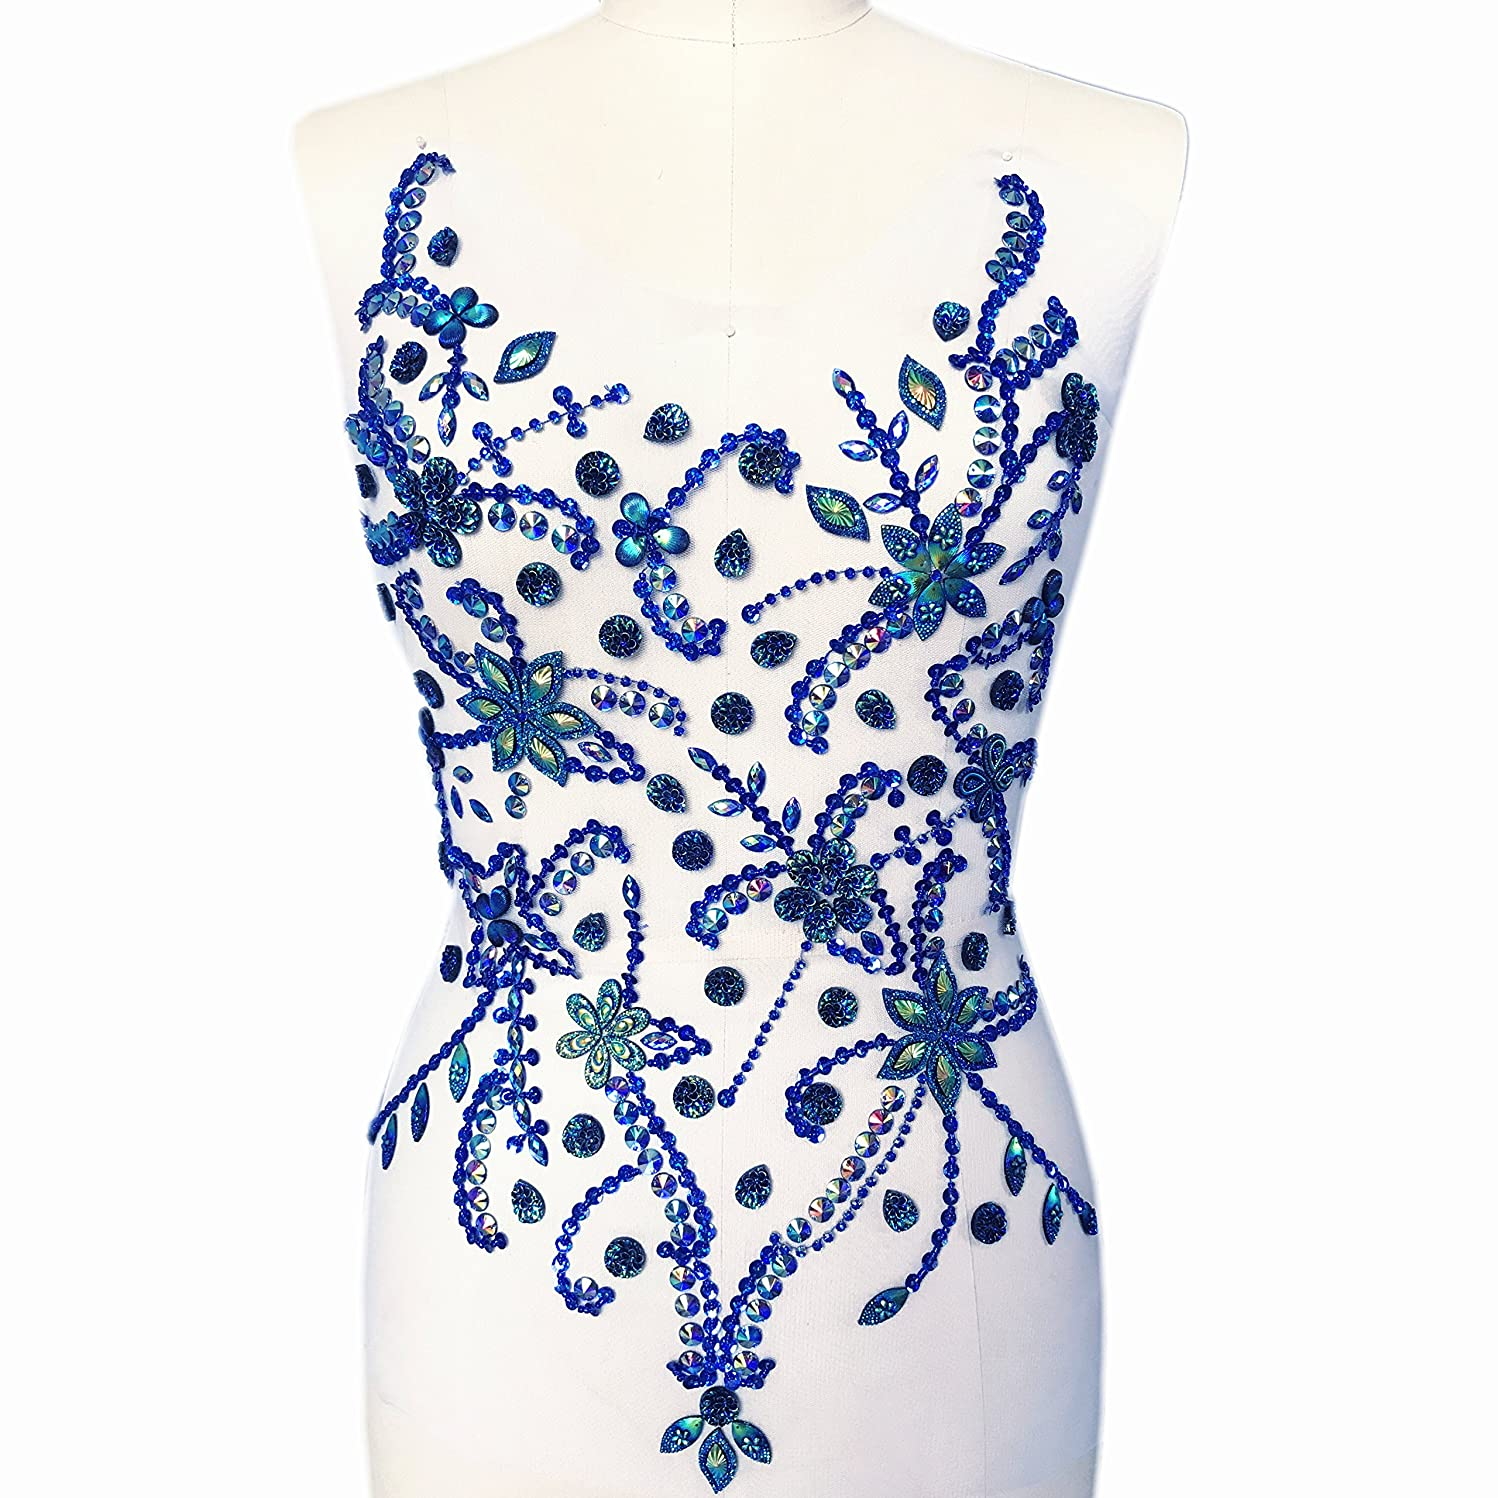 Exquisite Embroidery Big Flower Silver White Beaded Sequins Sew on Rhinestones Crystals Patches Applique Manual Costume Fine Motif Wedding Dress Trimming 14x21 Inch (Deep Blue)